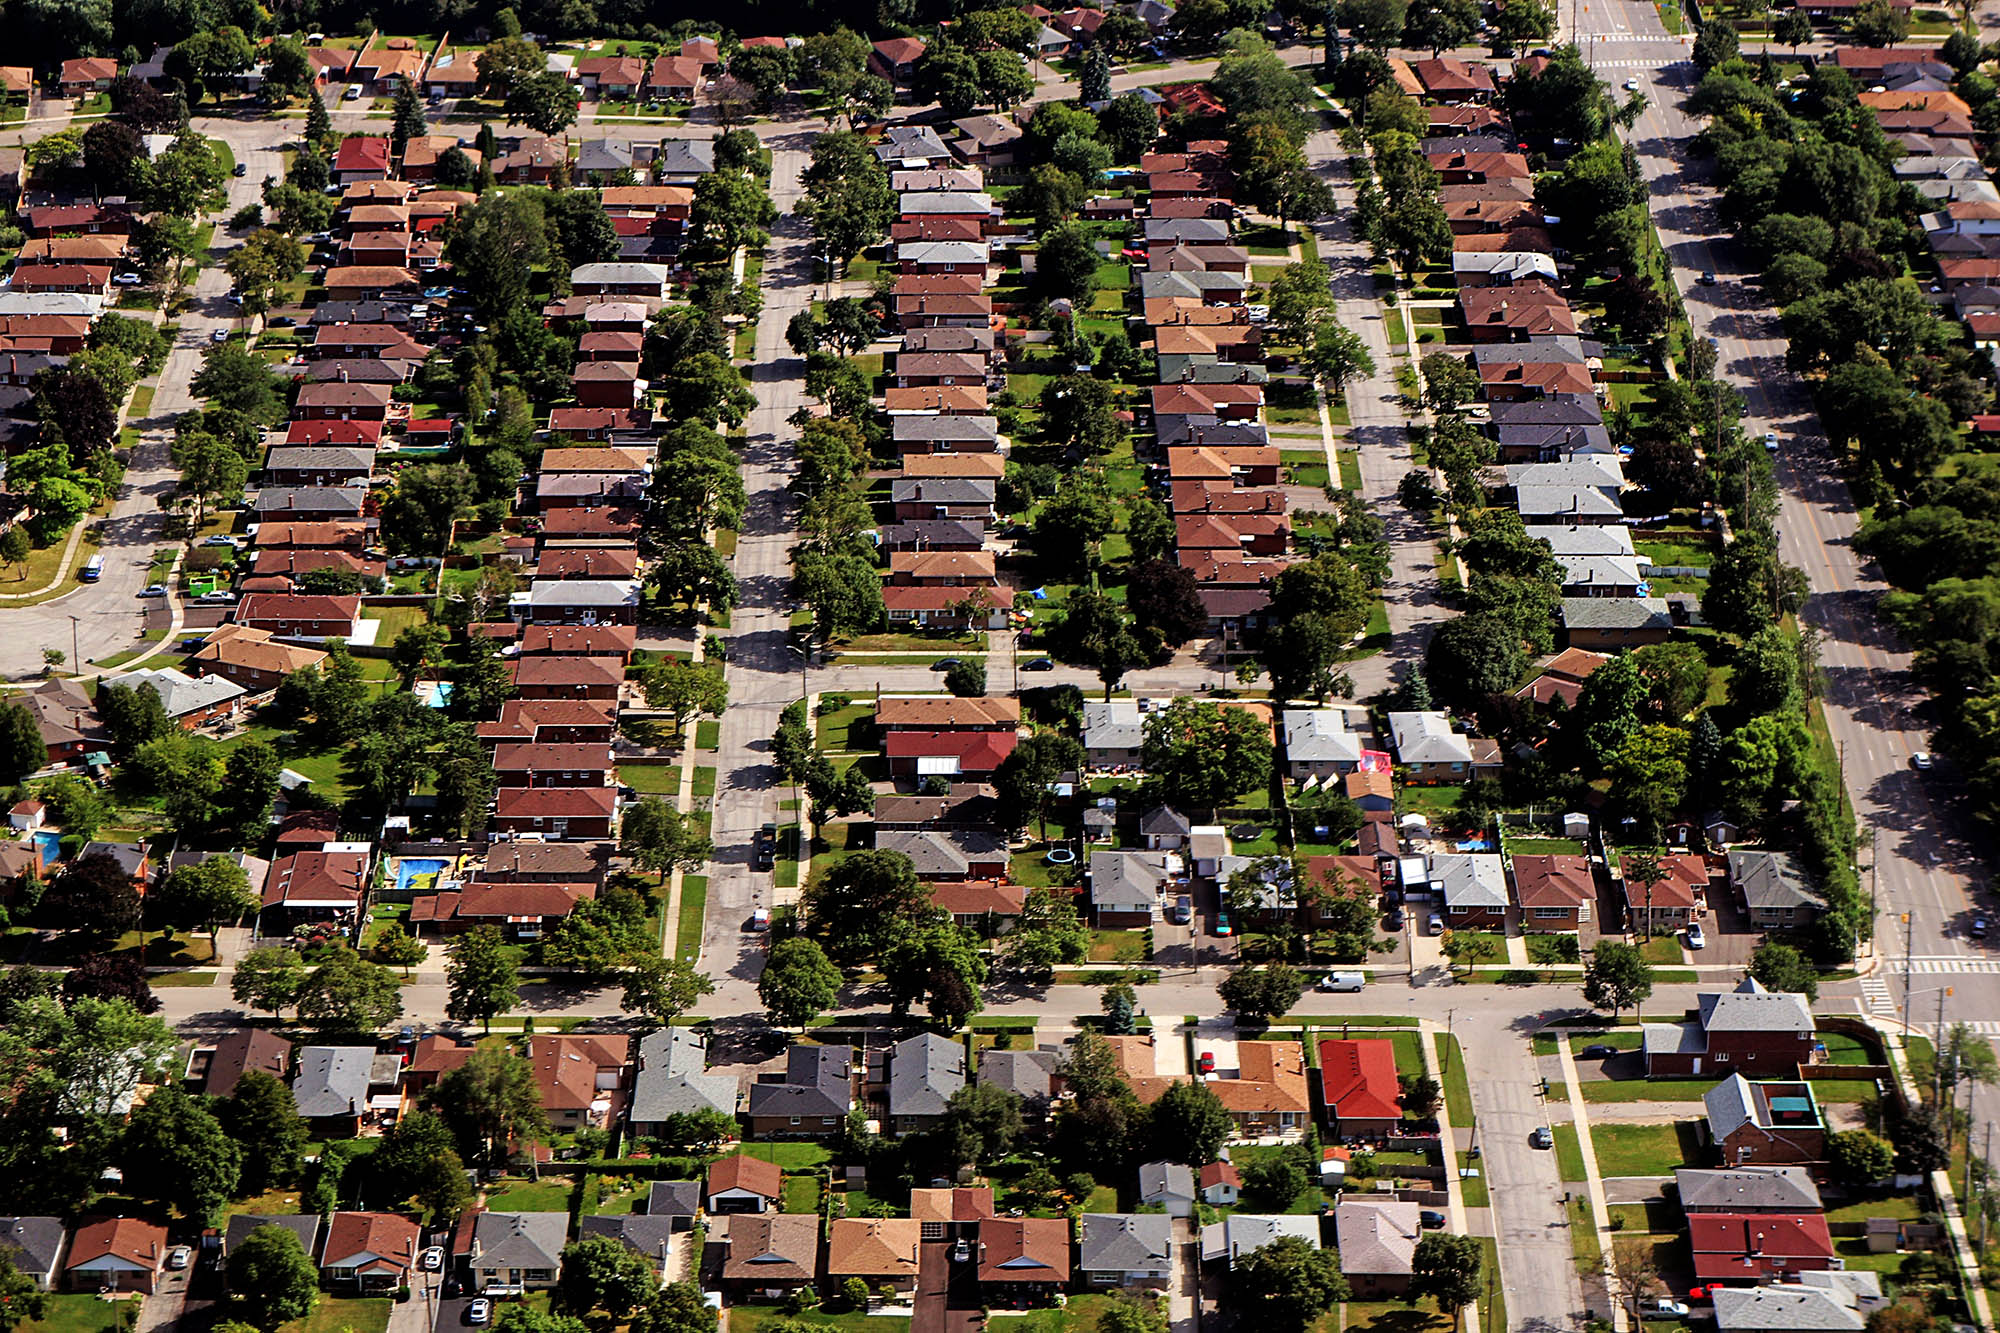 Arial view of house rooftops and city blocks near Toronto and su